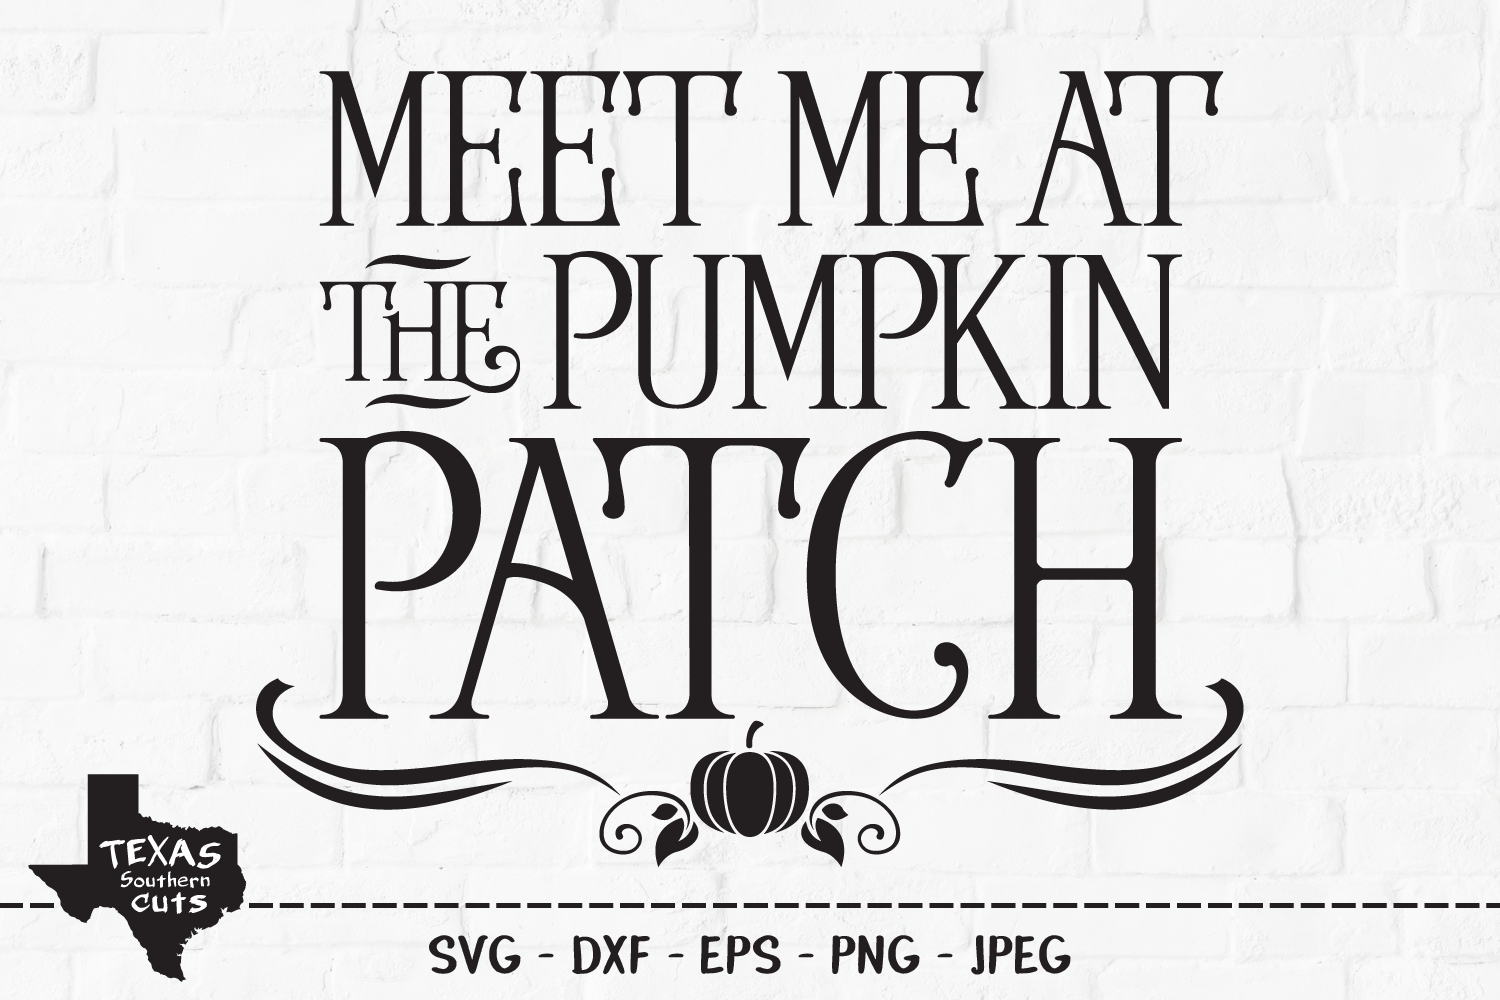 Pumpkin Patch Fall Harvest Design Graphic By Texassoutherncuts Creative Fabrica